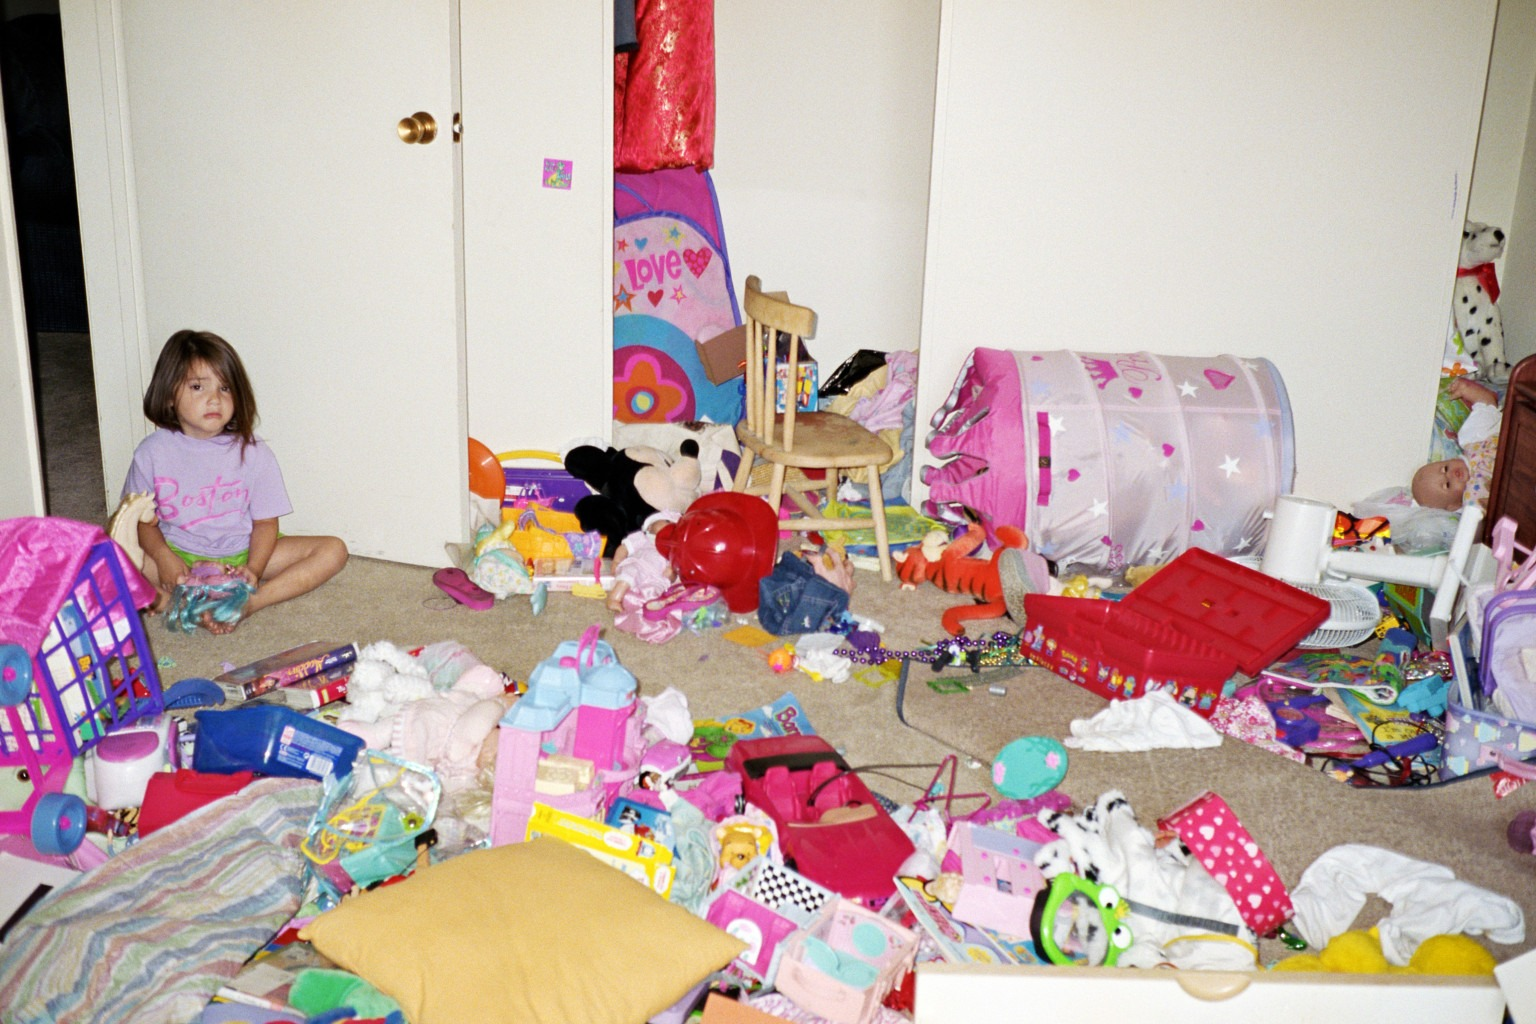 Girl (4-6) sitting on floor in messy room